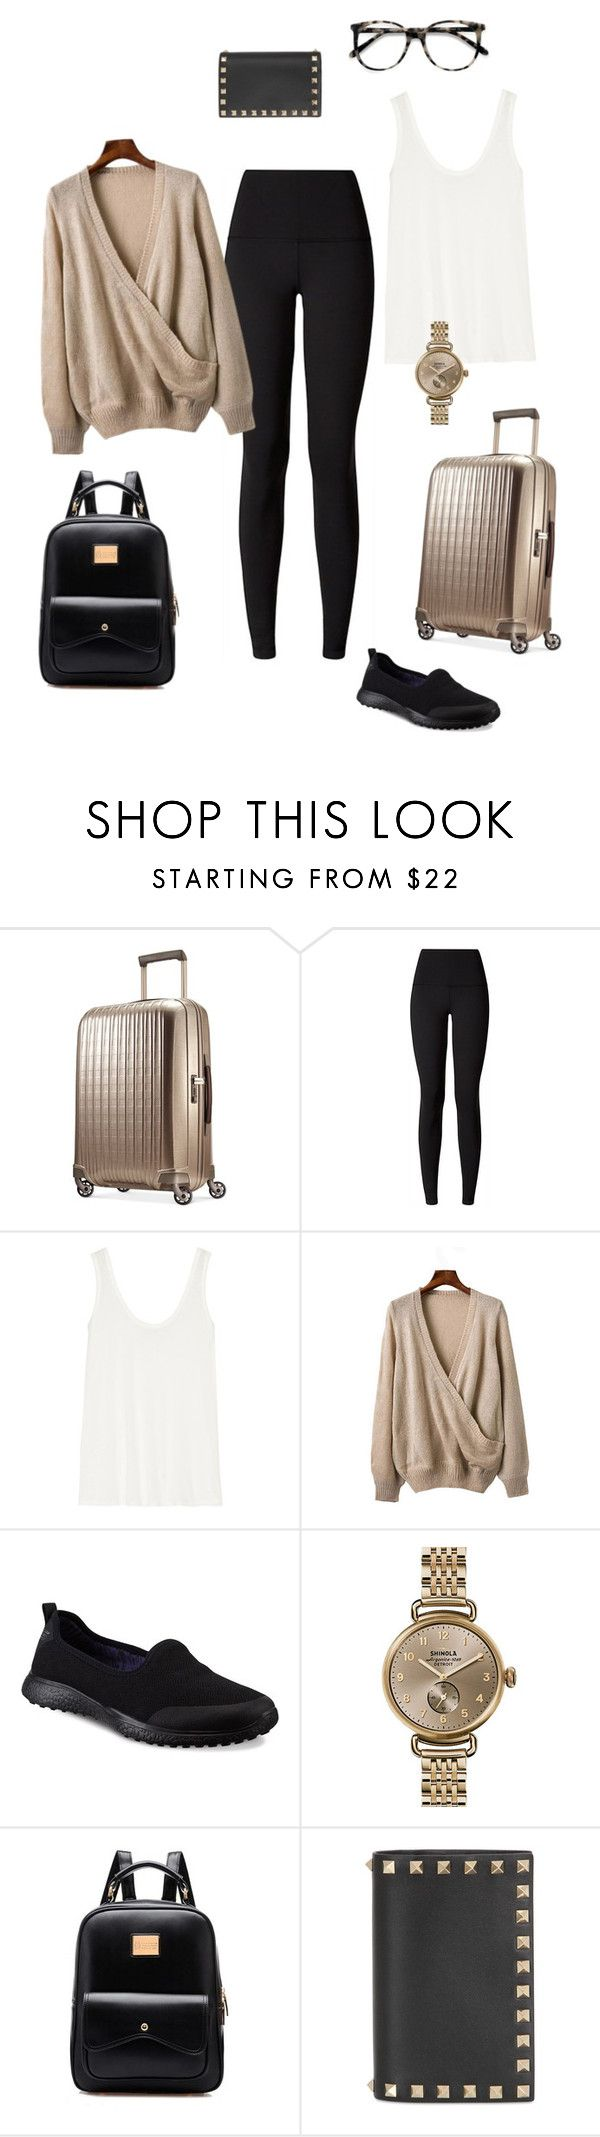 Airplane outfit YYC to YYZ by calgarysarah on Polyvore featuring #ShinolaWatch from #JRDunn